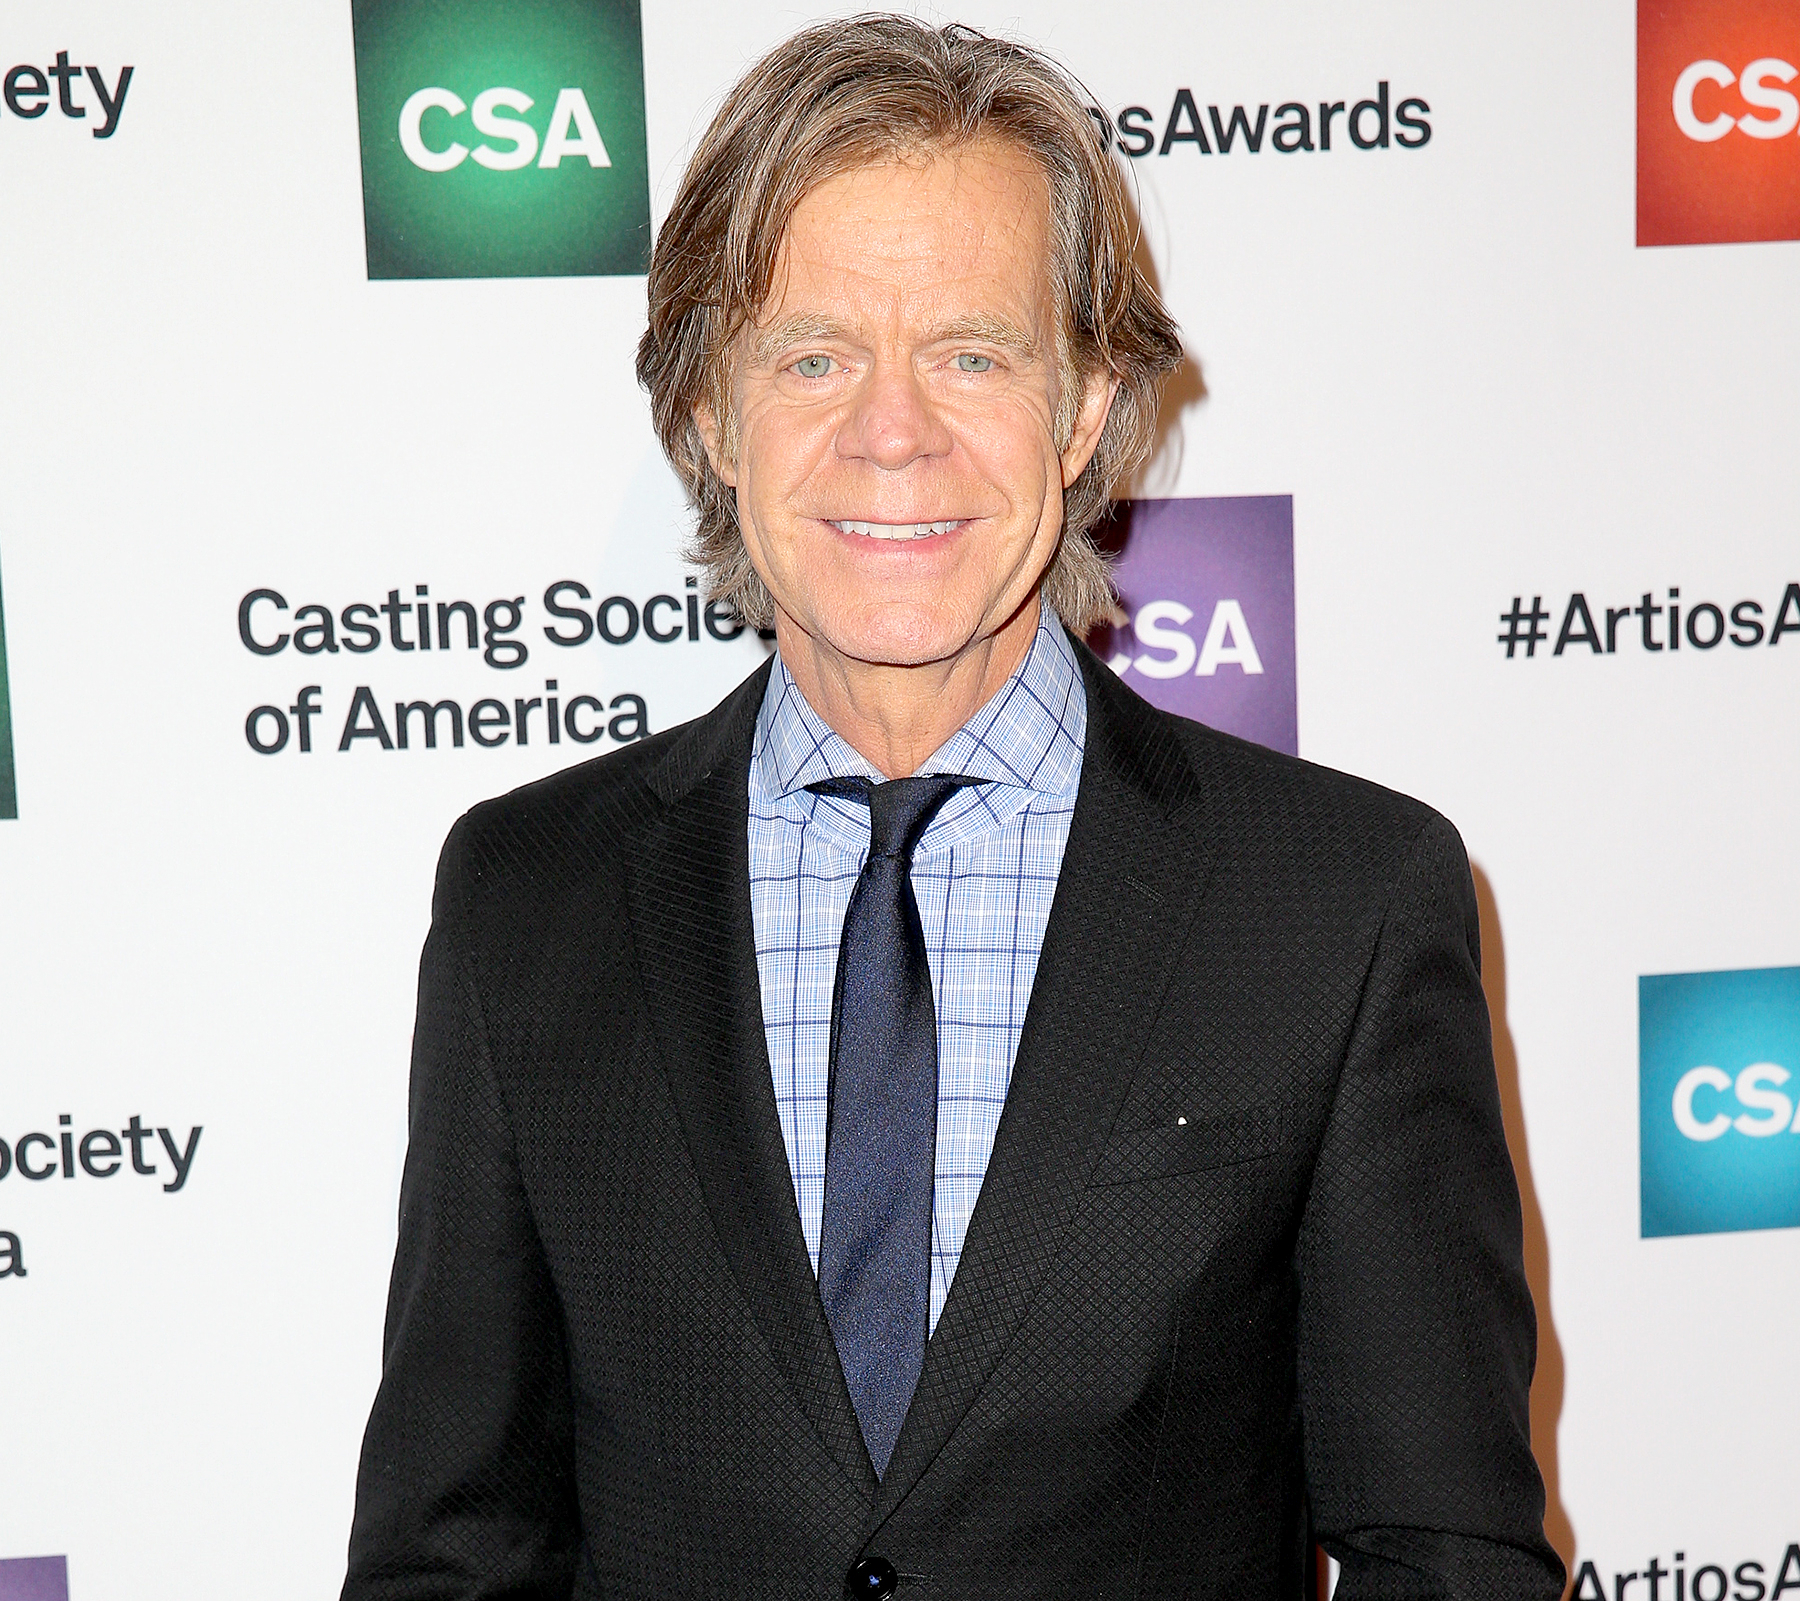 William H. Macy attends the Casting Society Of America's (CSA) 31st Annual Artios Awards at The Beverly Hilton Hotel on January 21, 2016.